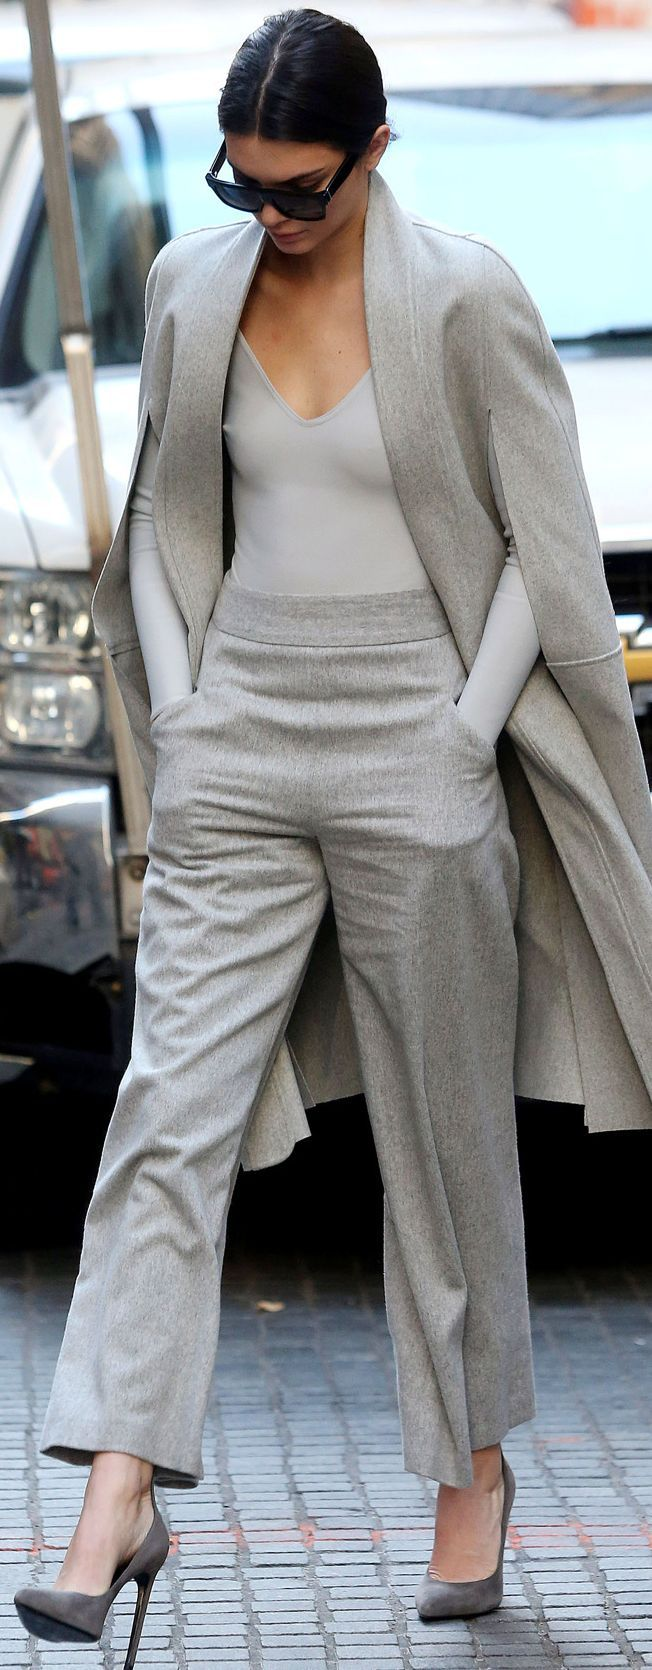 Kendall Jenner Shades Of Gray Fall Streetstyle Inspo by Mode d'Amour